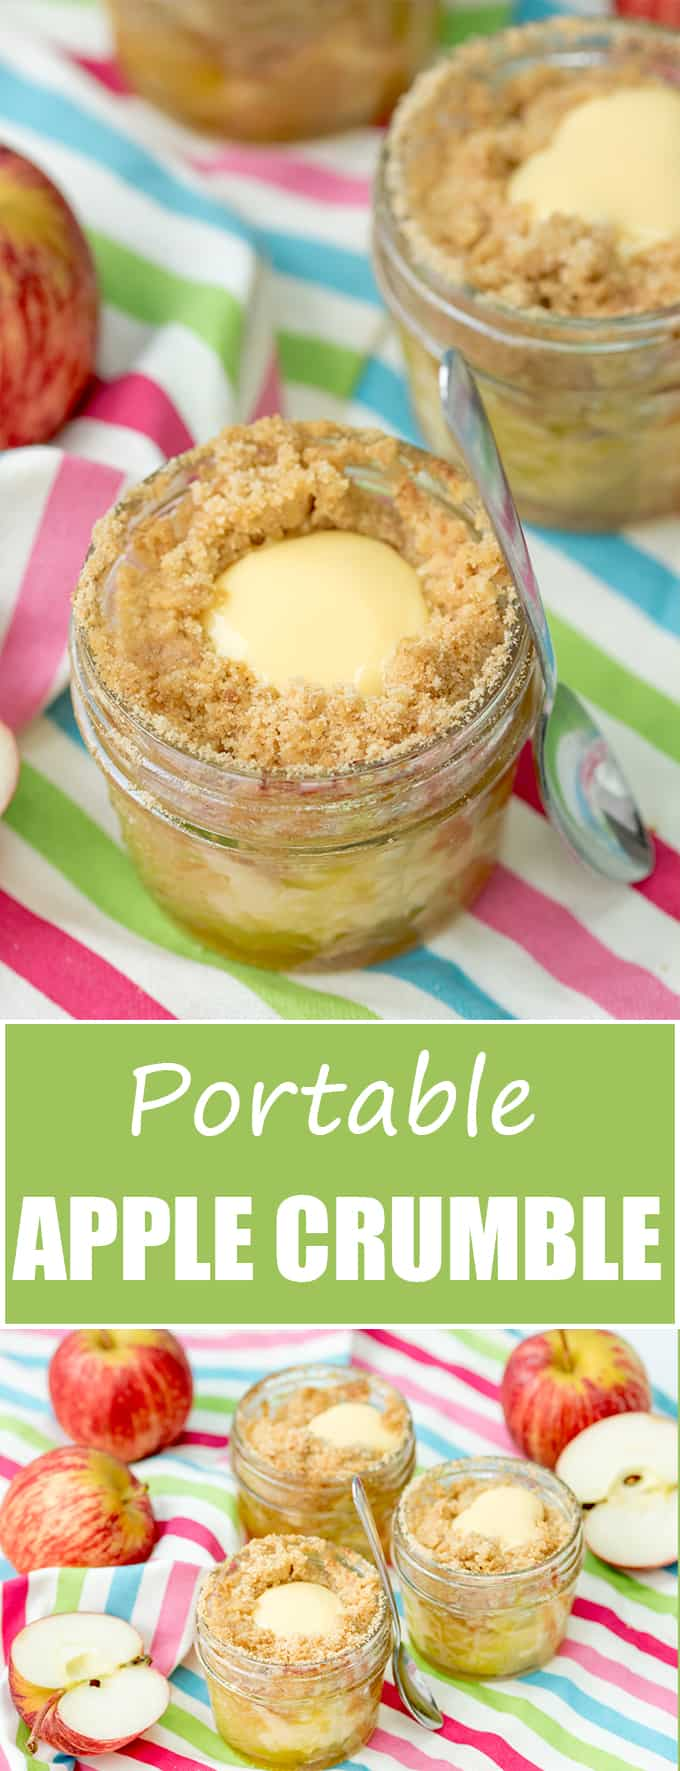 Portable Apple Crumble Jars - with a custard core!! Eat them hot or cold for a fab picnic treat!